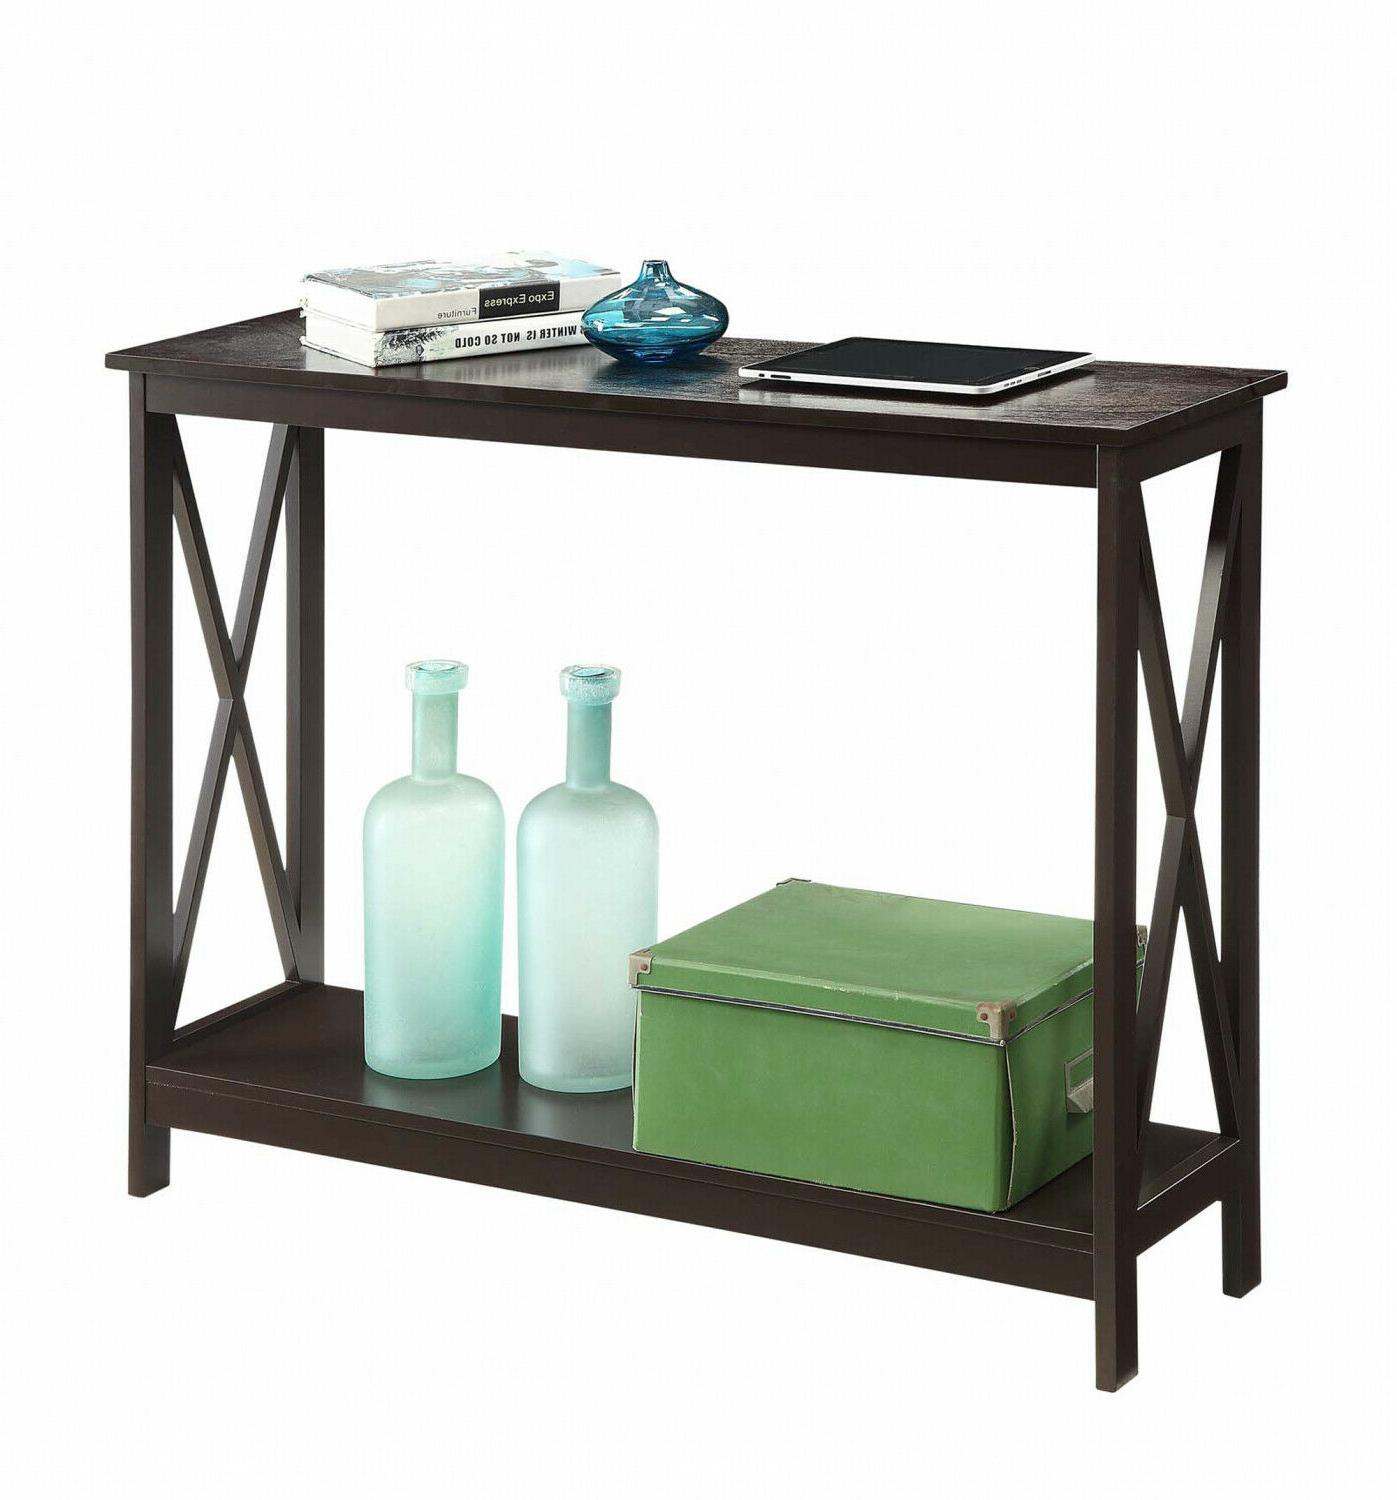 Wood Console Tables Accent Entryway Foyer